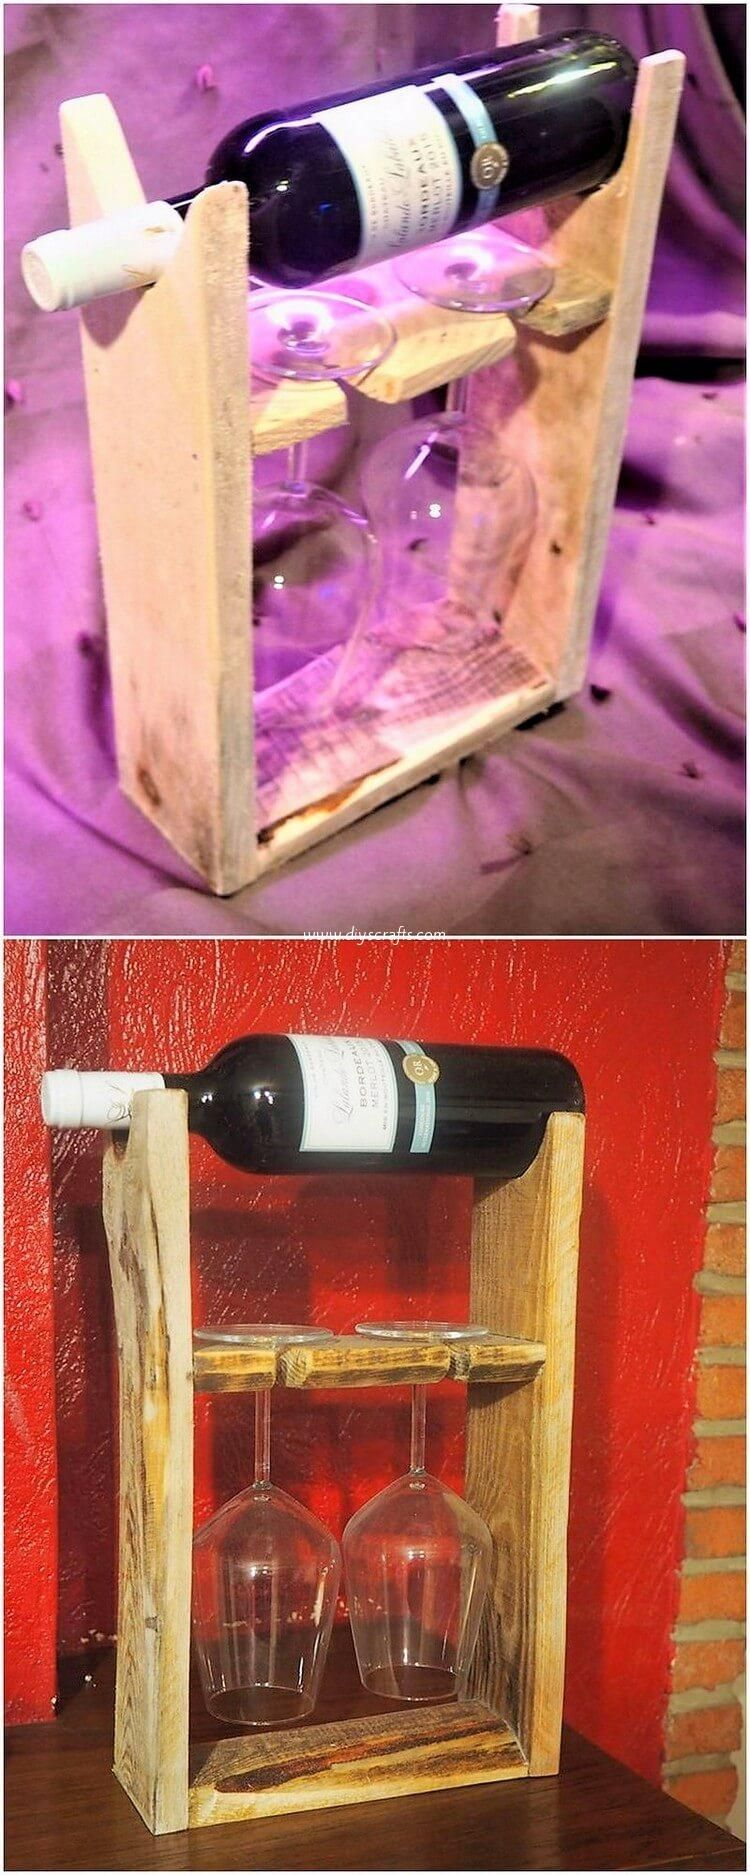 This Is Another Idea Of Using The Wood Pallet In The Creation Of The Wine Rack With The Glass Holder This Creation Wood Pallets Wooden Wine Rack Diy Wine Rack